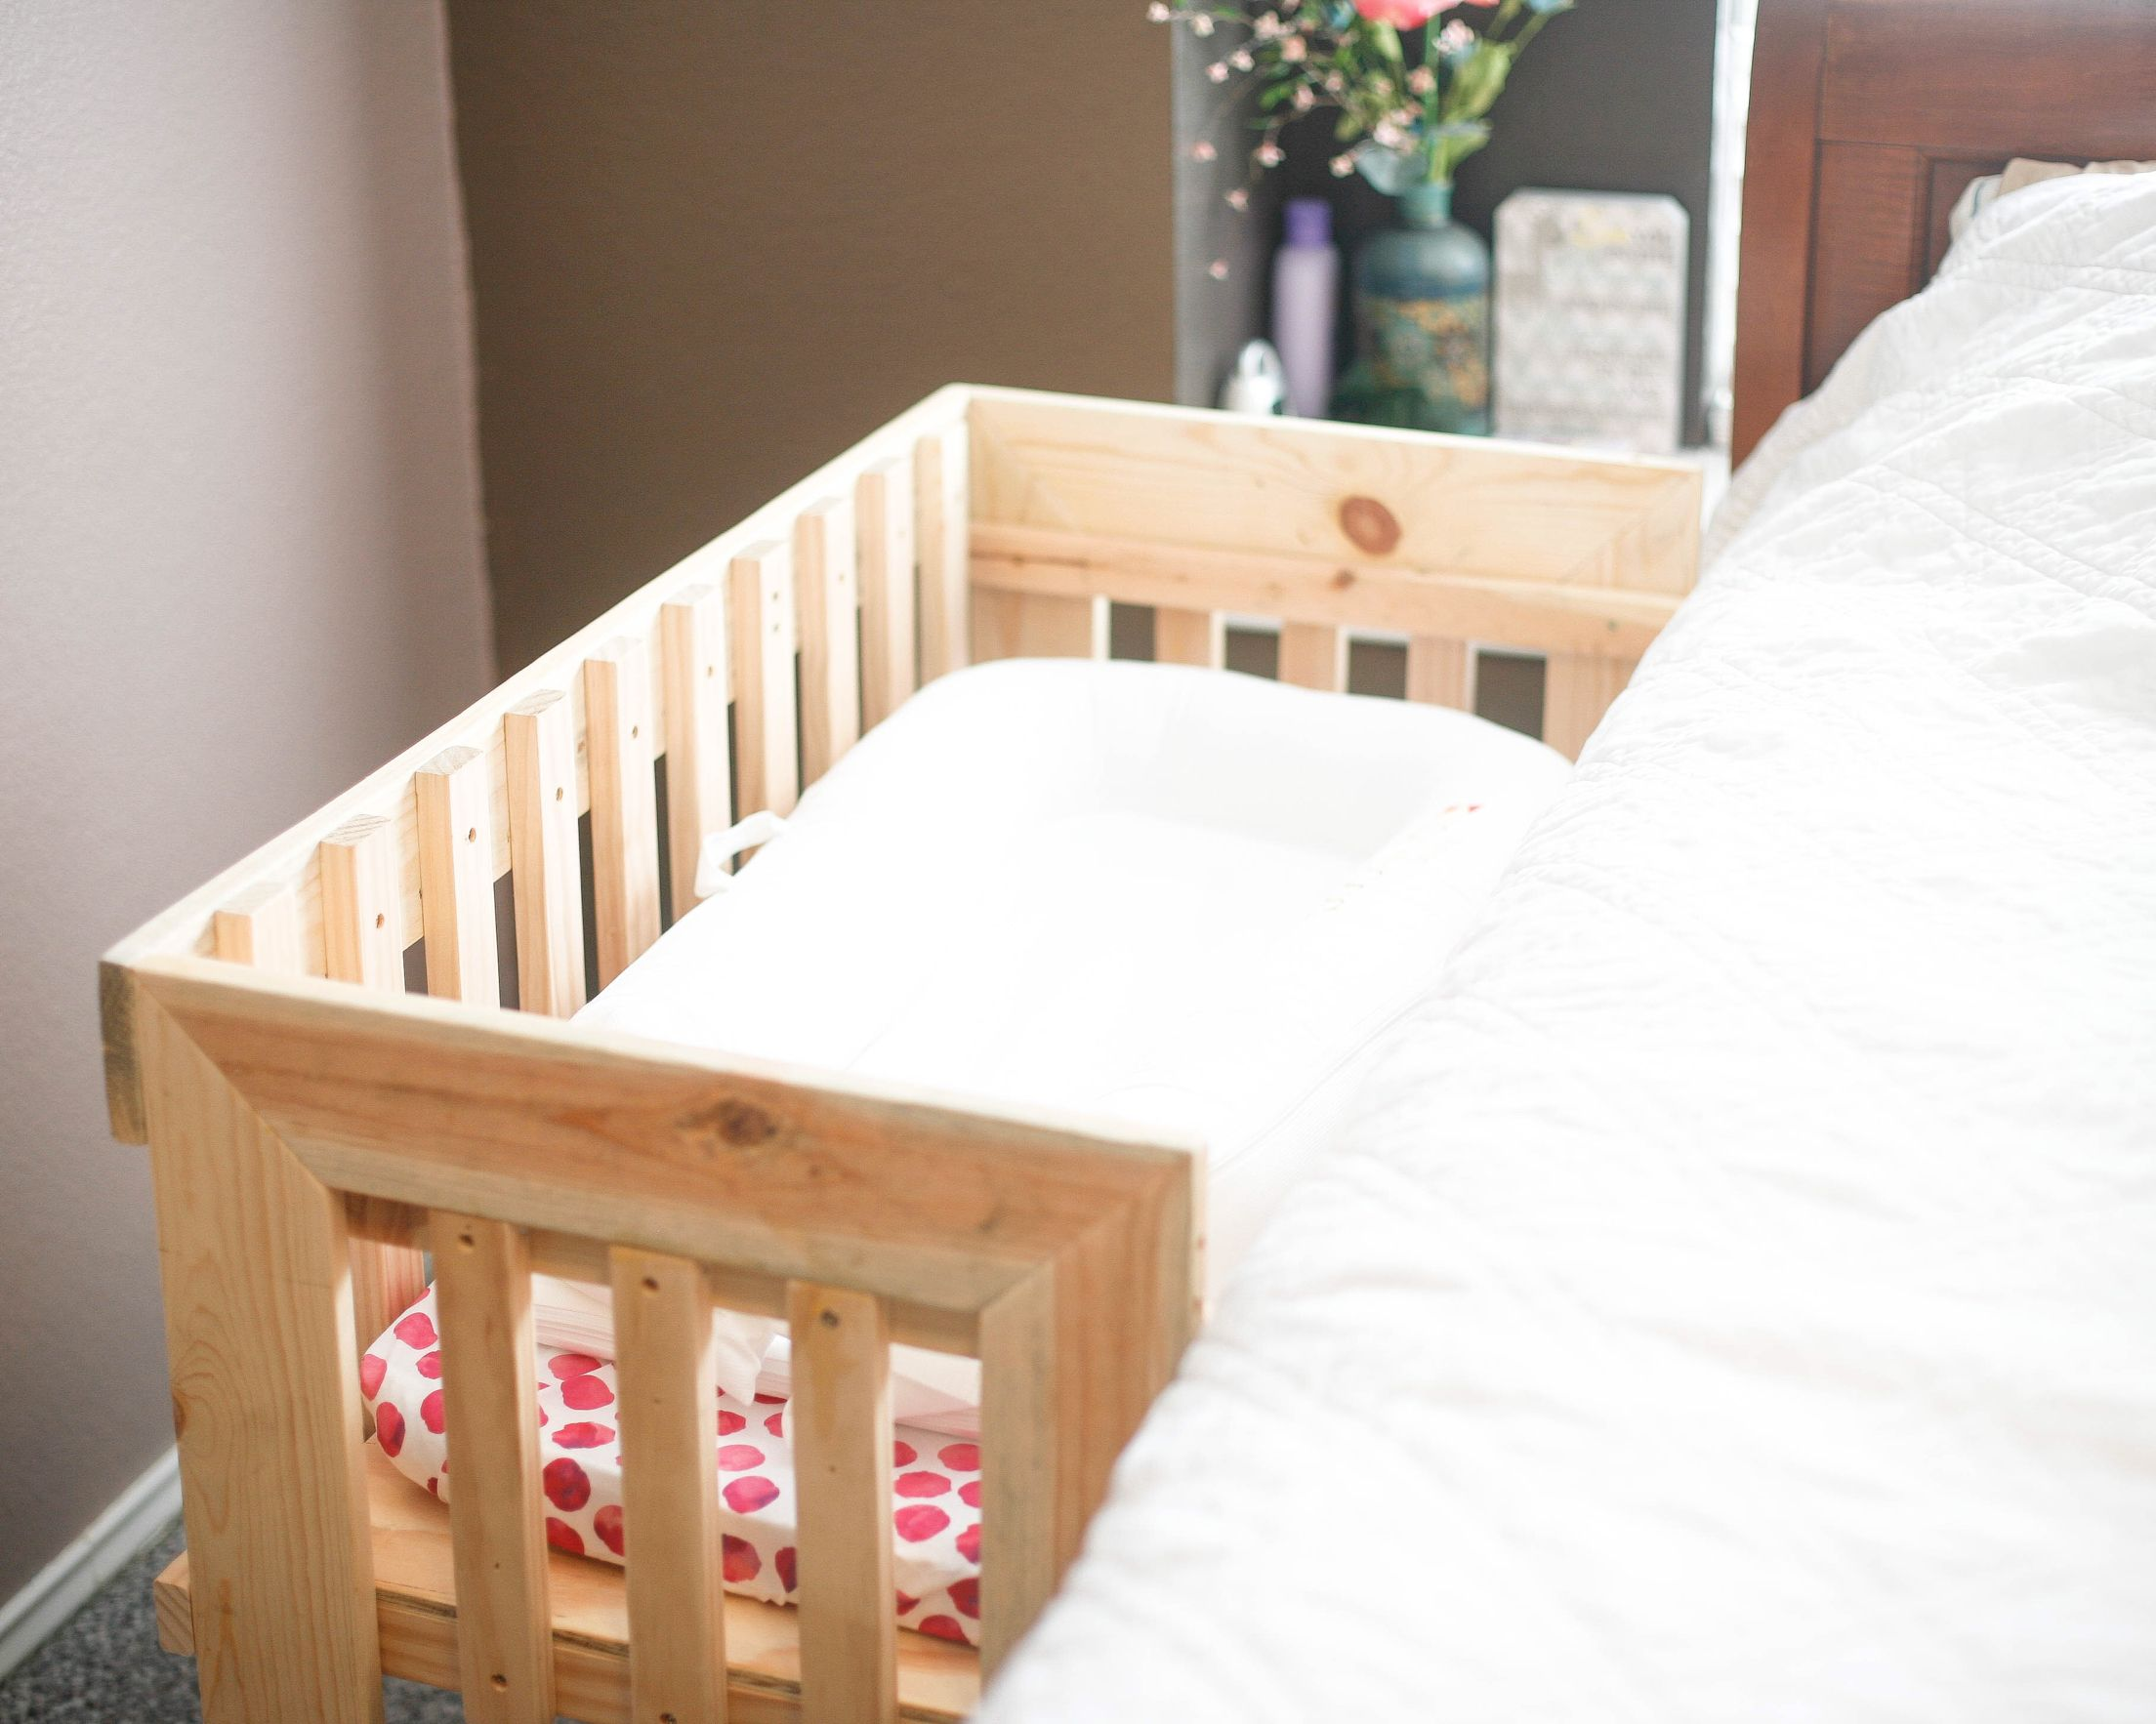 Wooden Cosleeper cosleeper crib newborn